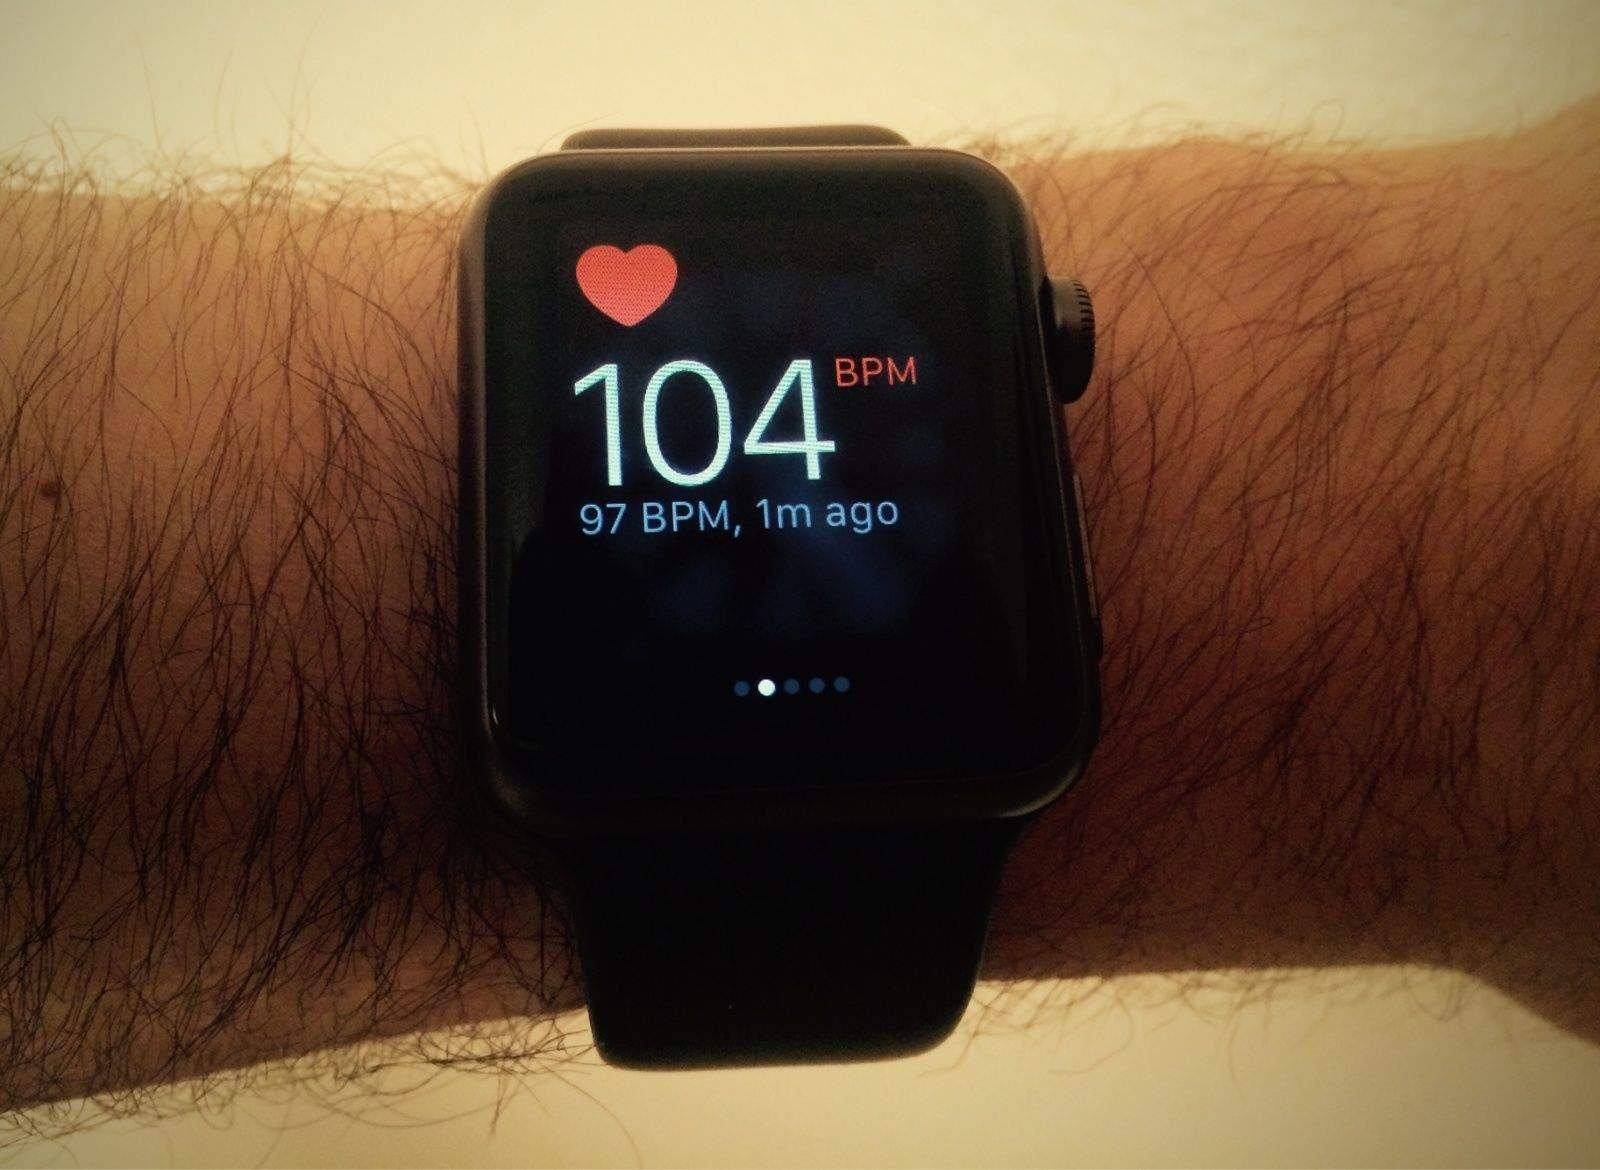 Apple Watch alerts user of irregular heart rhythms in sleep